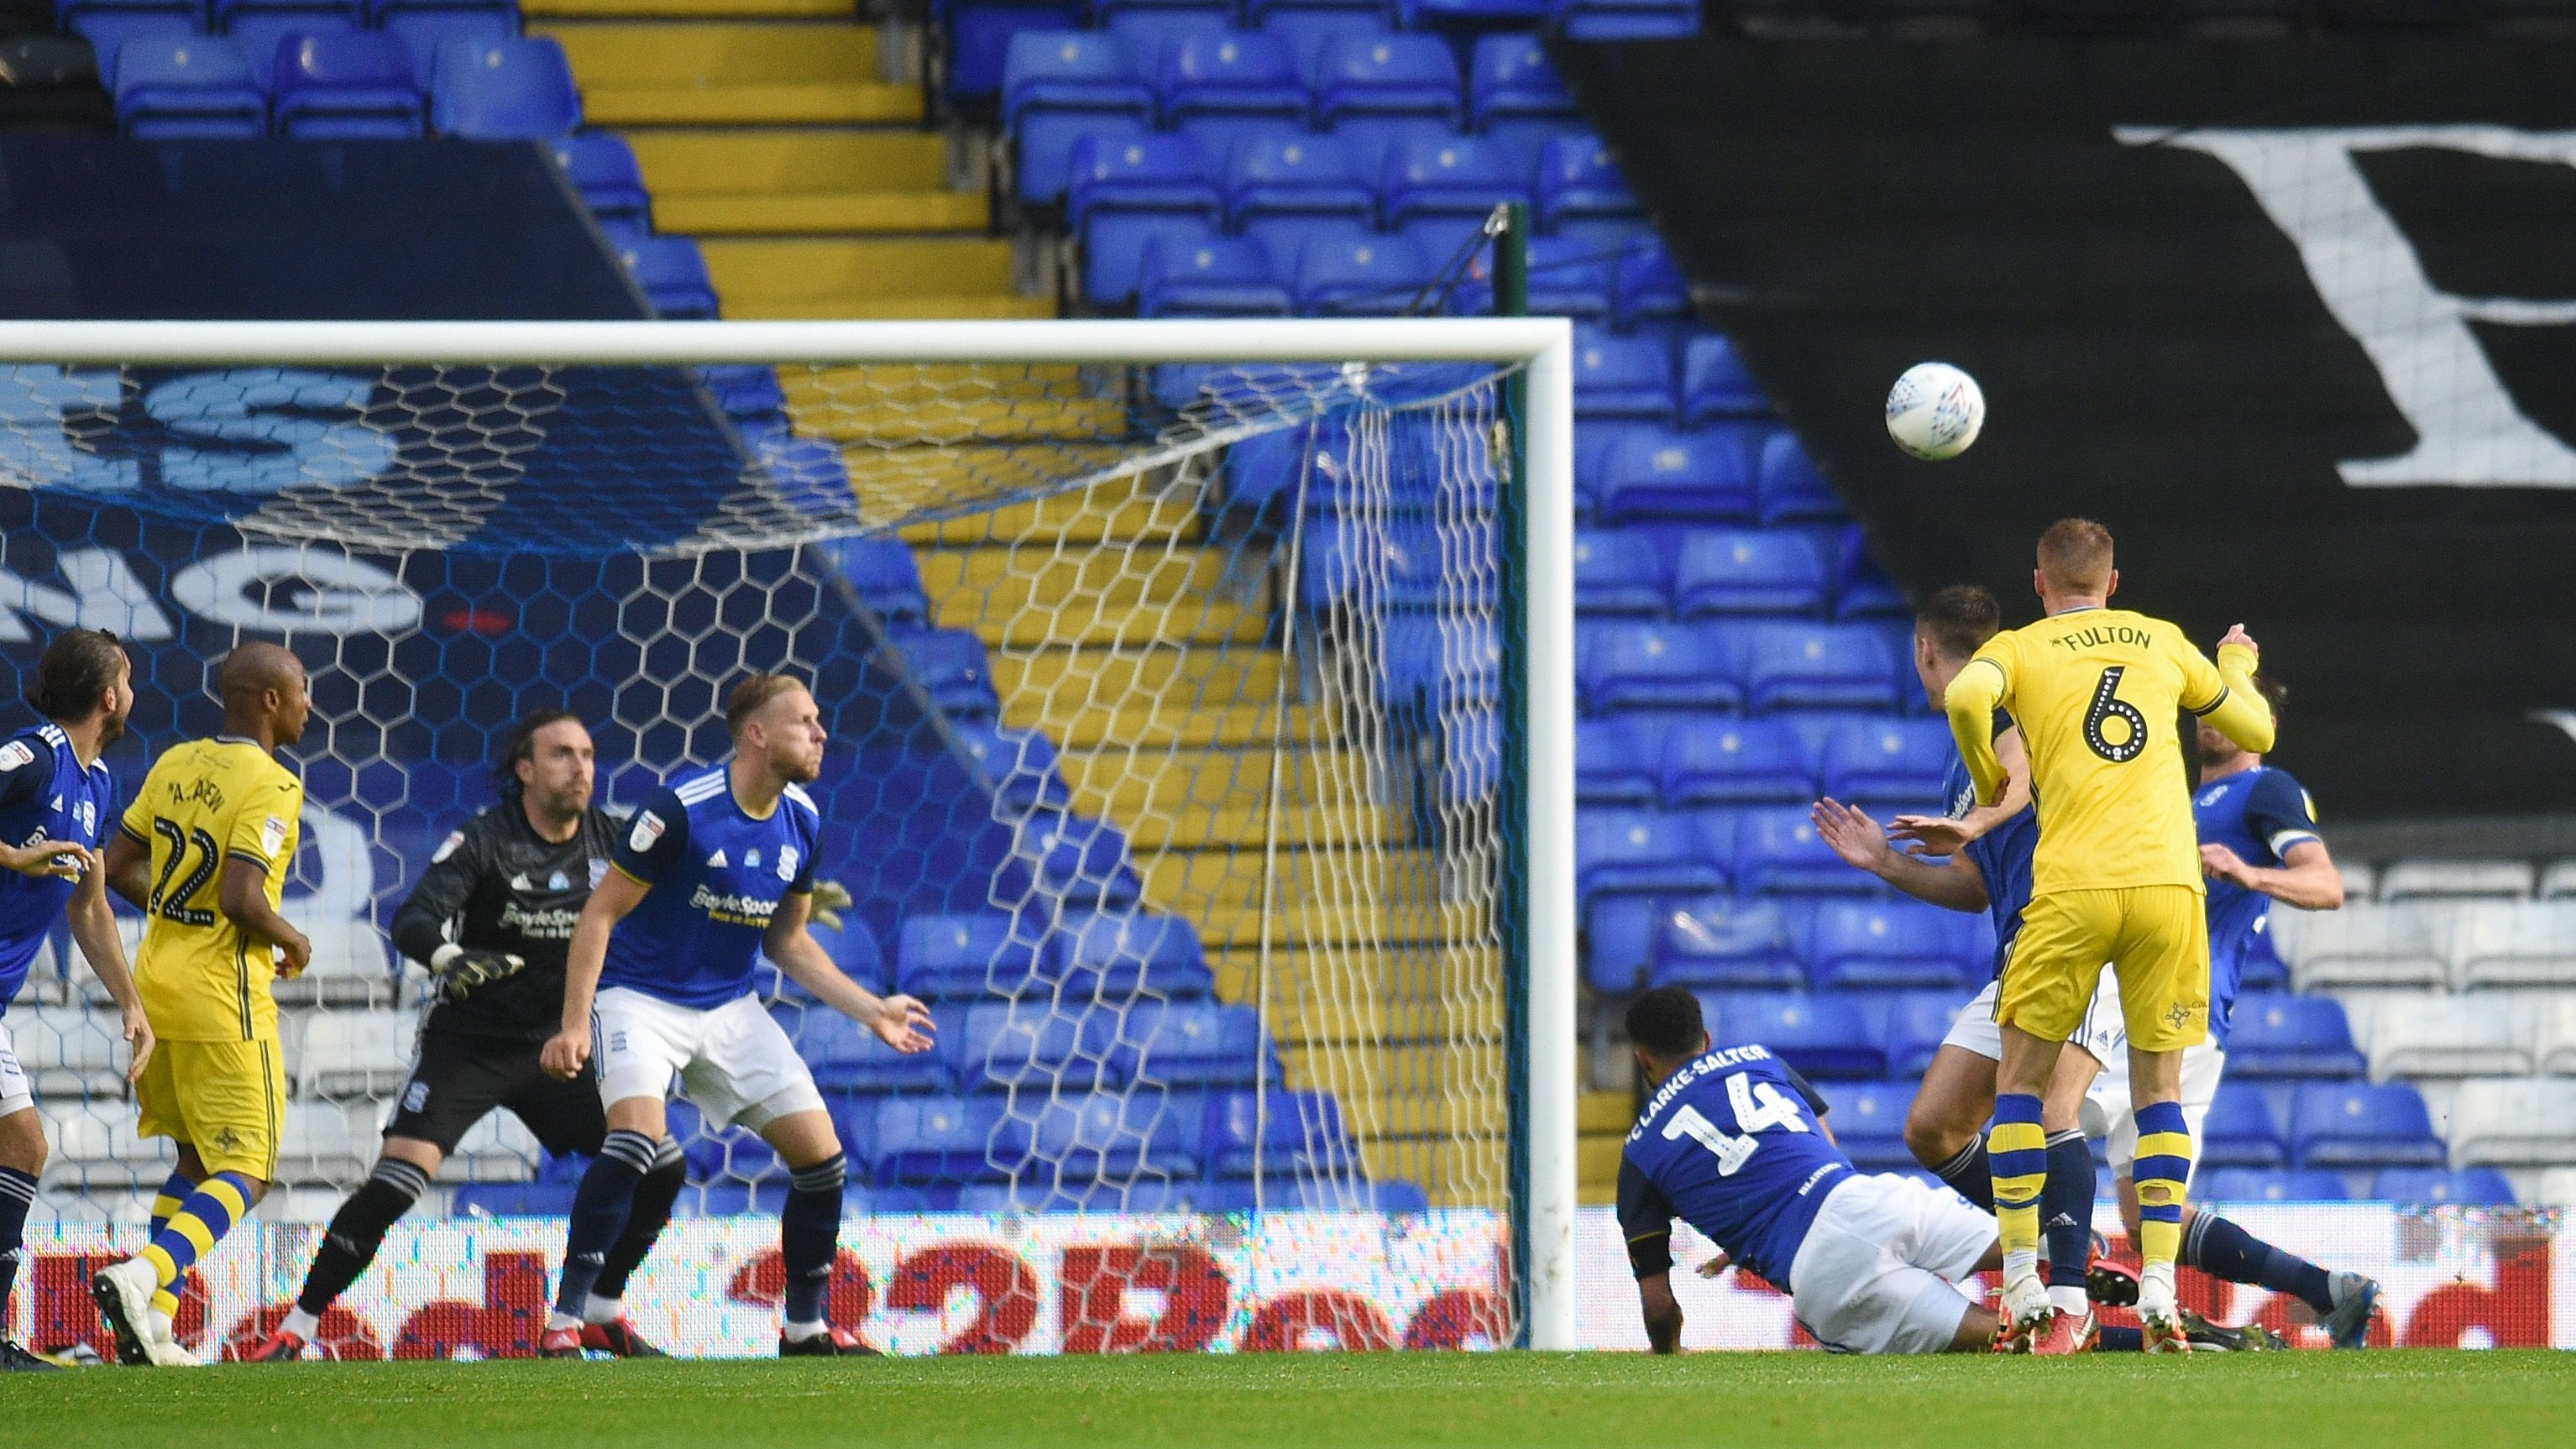 Birmingham City v Swansea City